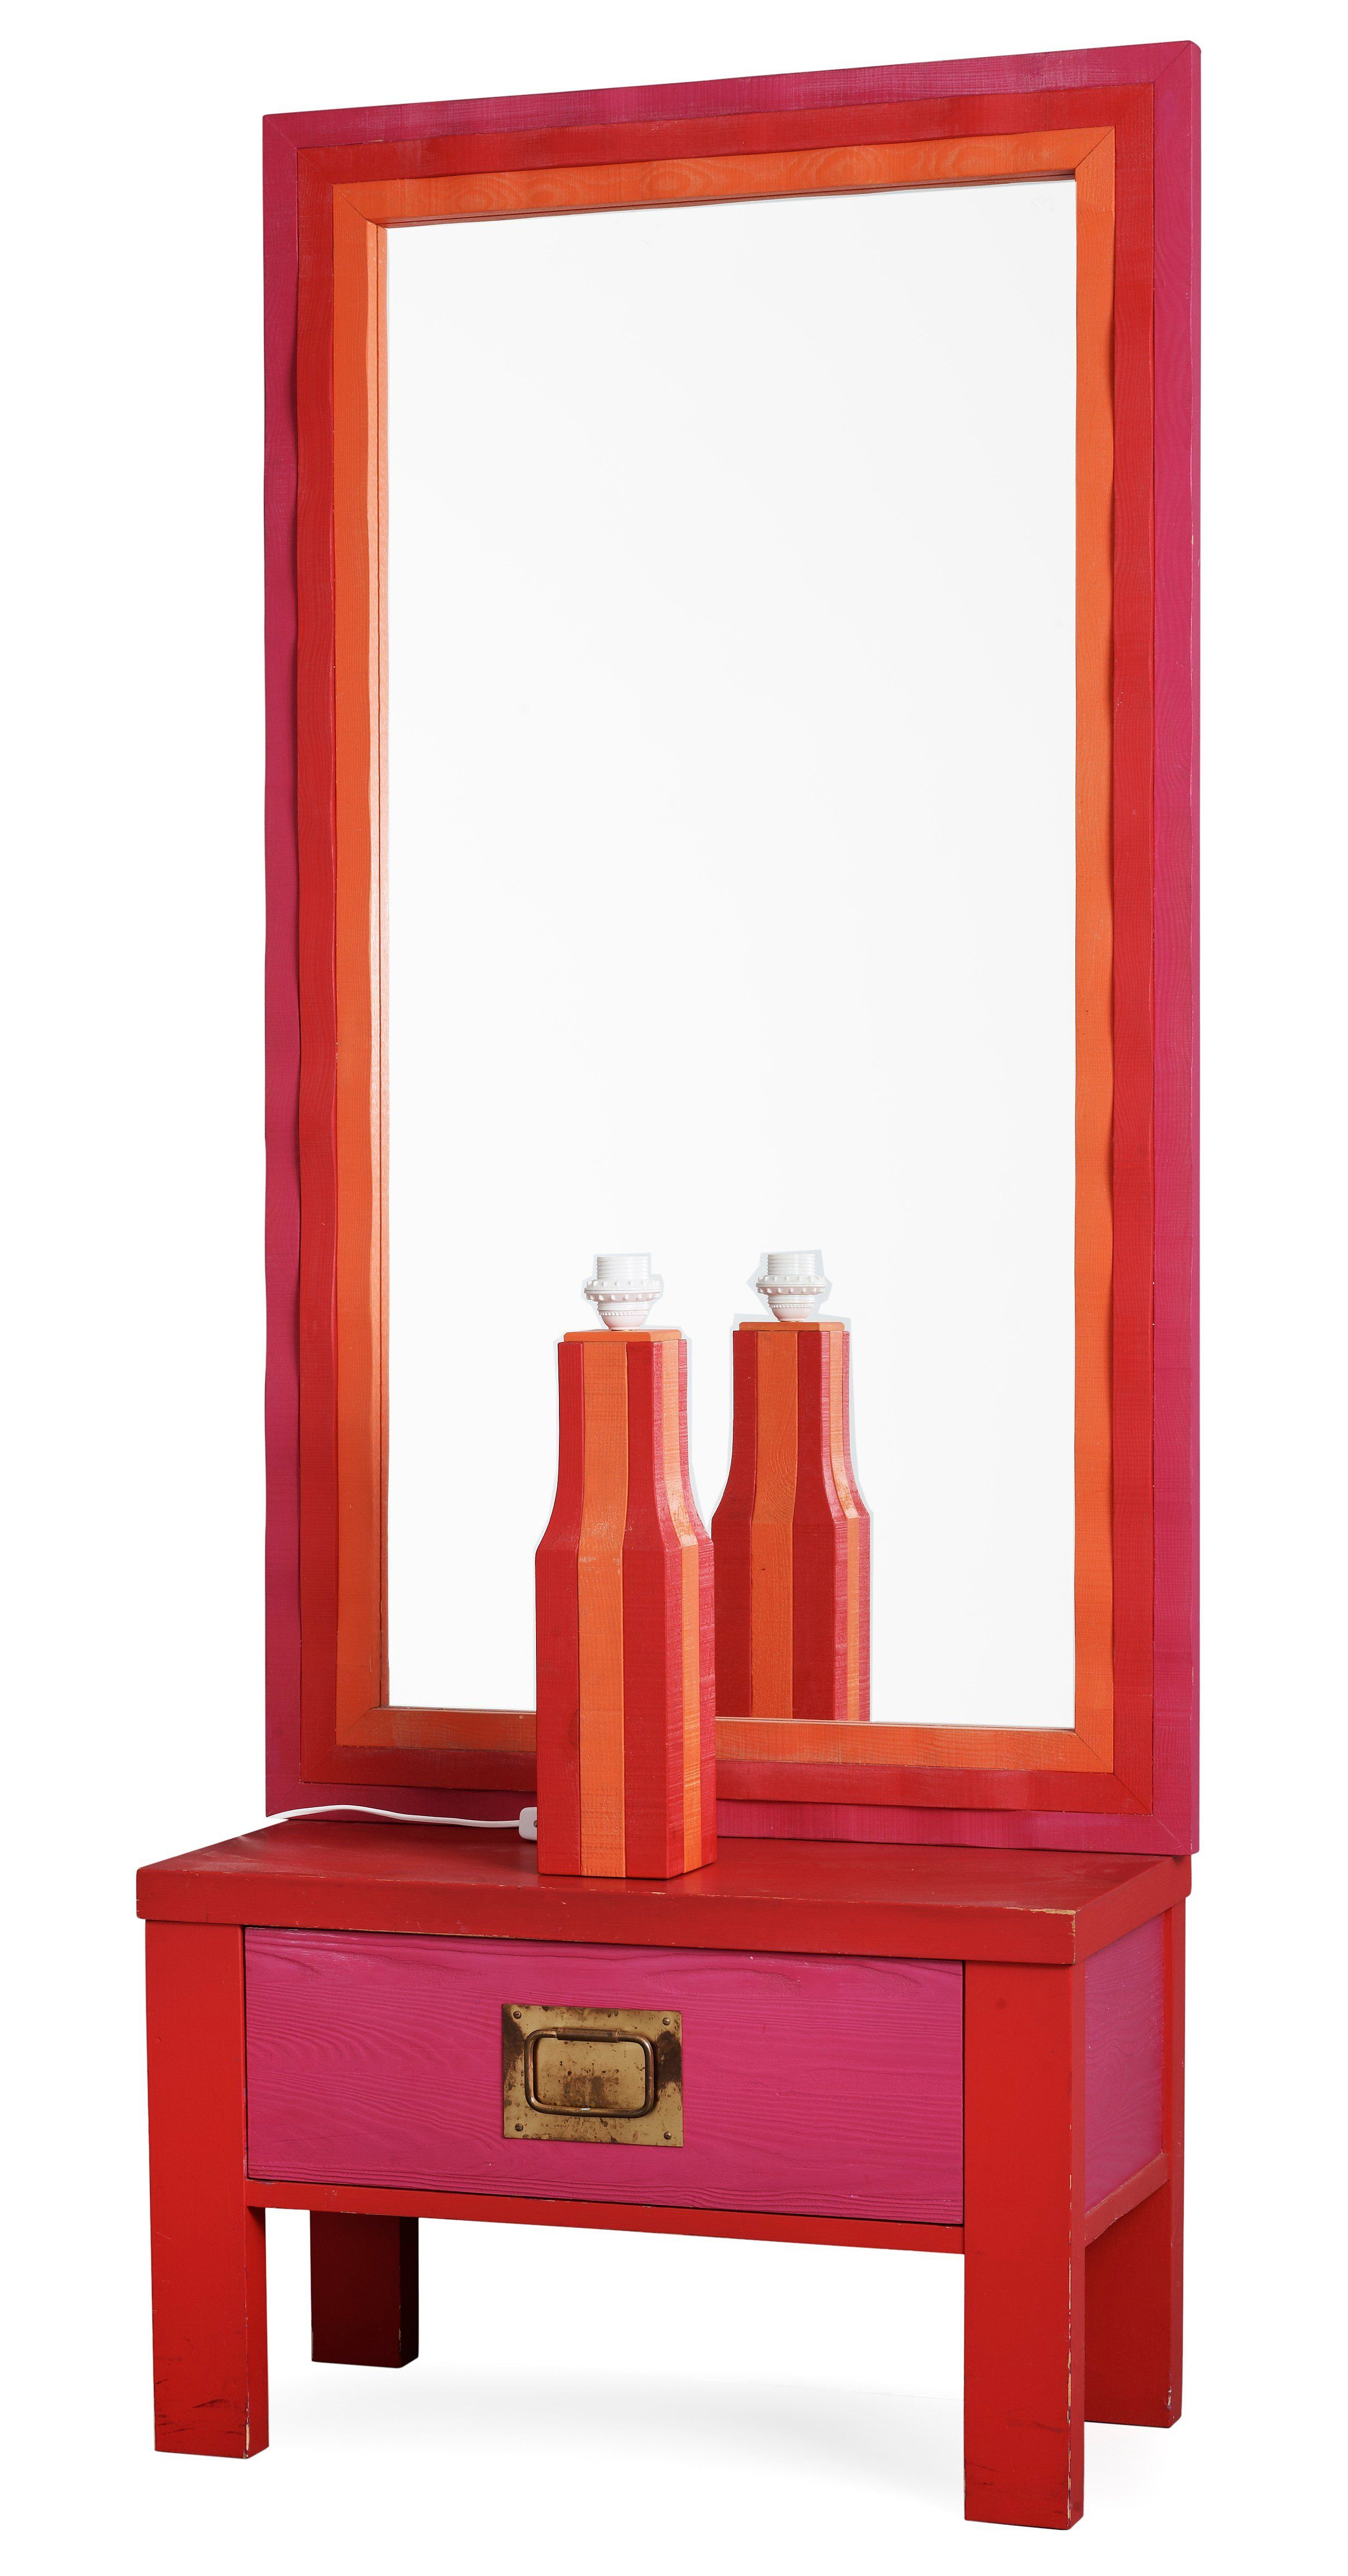 An Erik Höglund Set Of A Painted Wooden Bureau, A Mirror And A Table Lamp